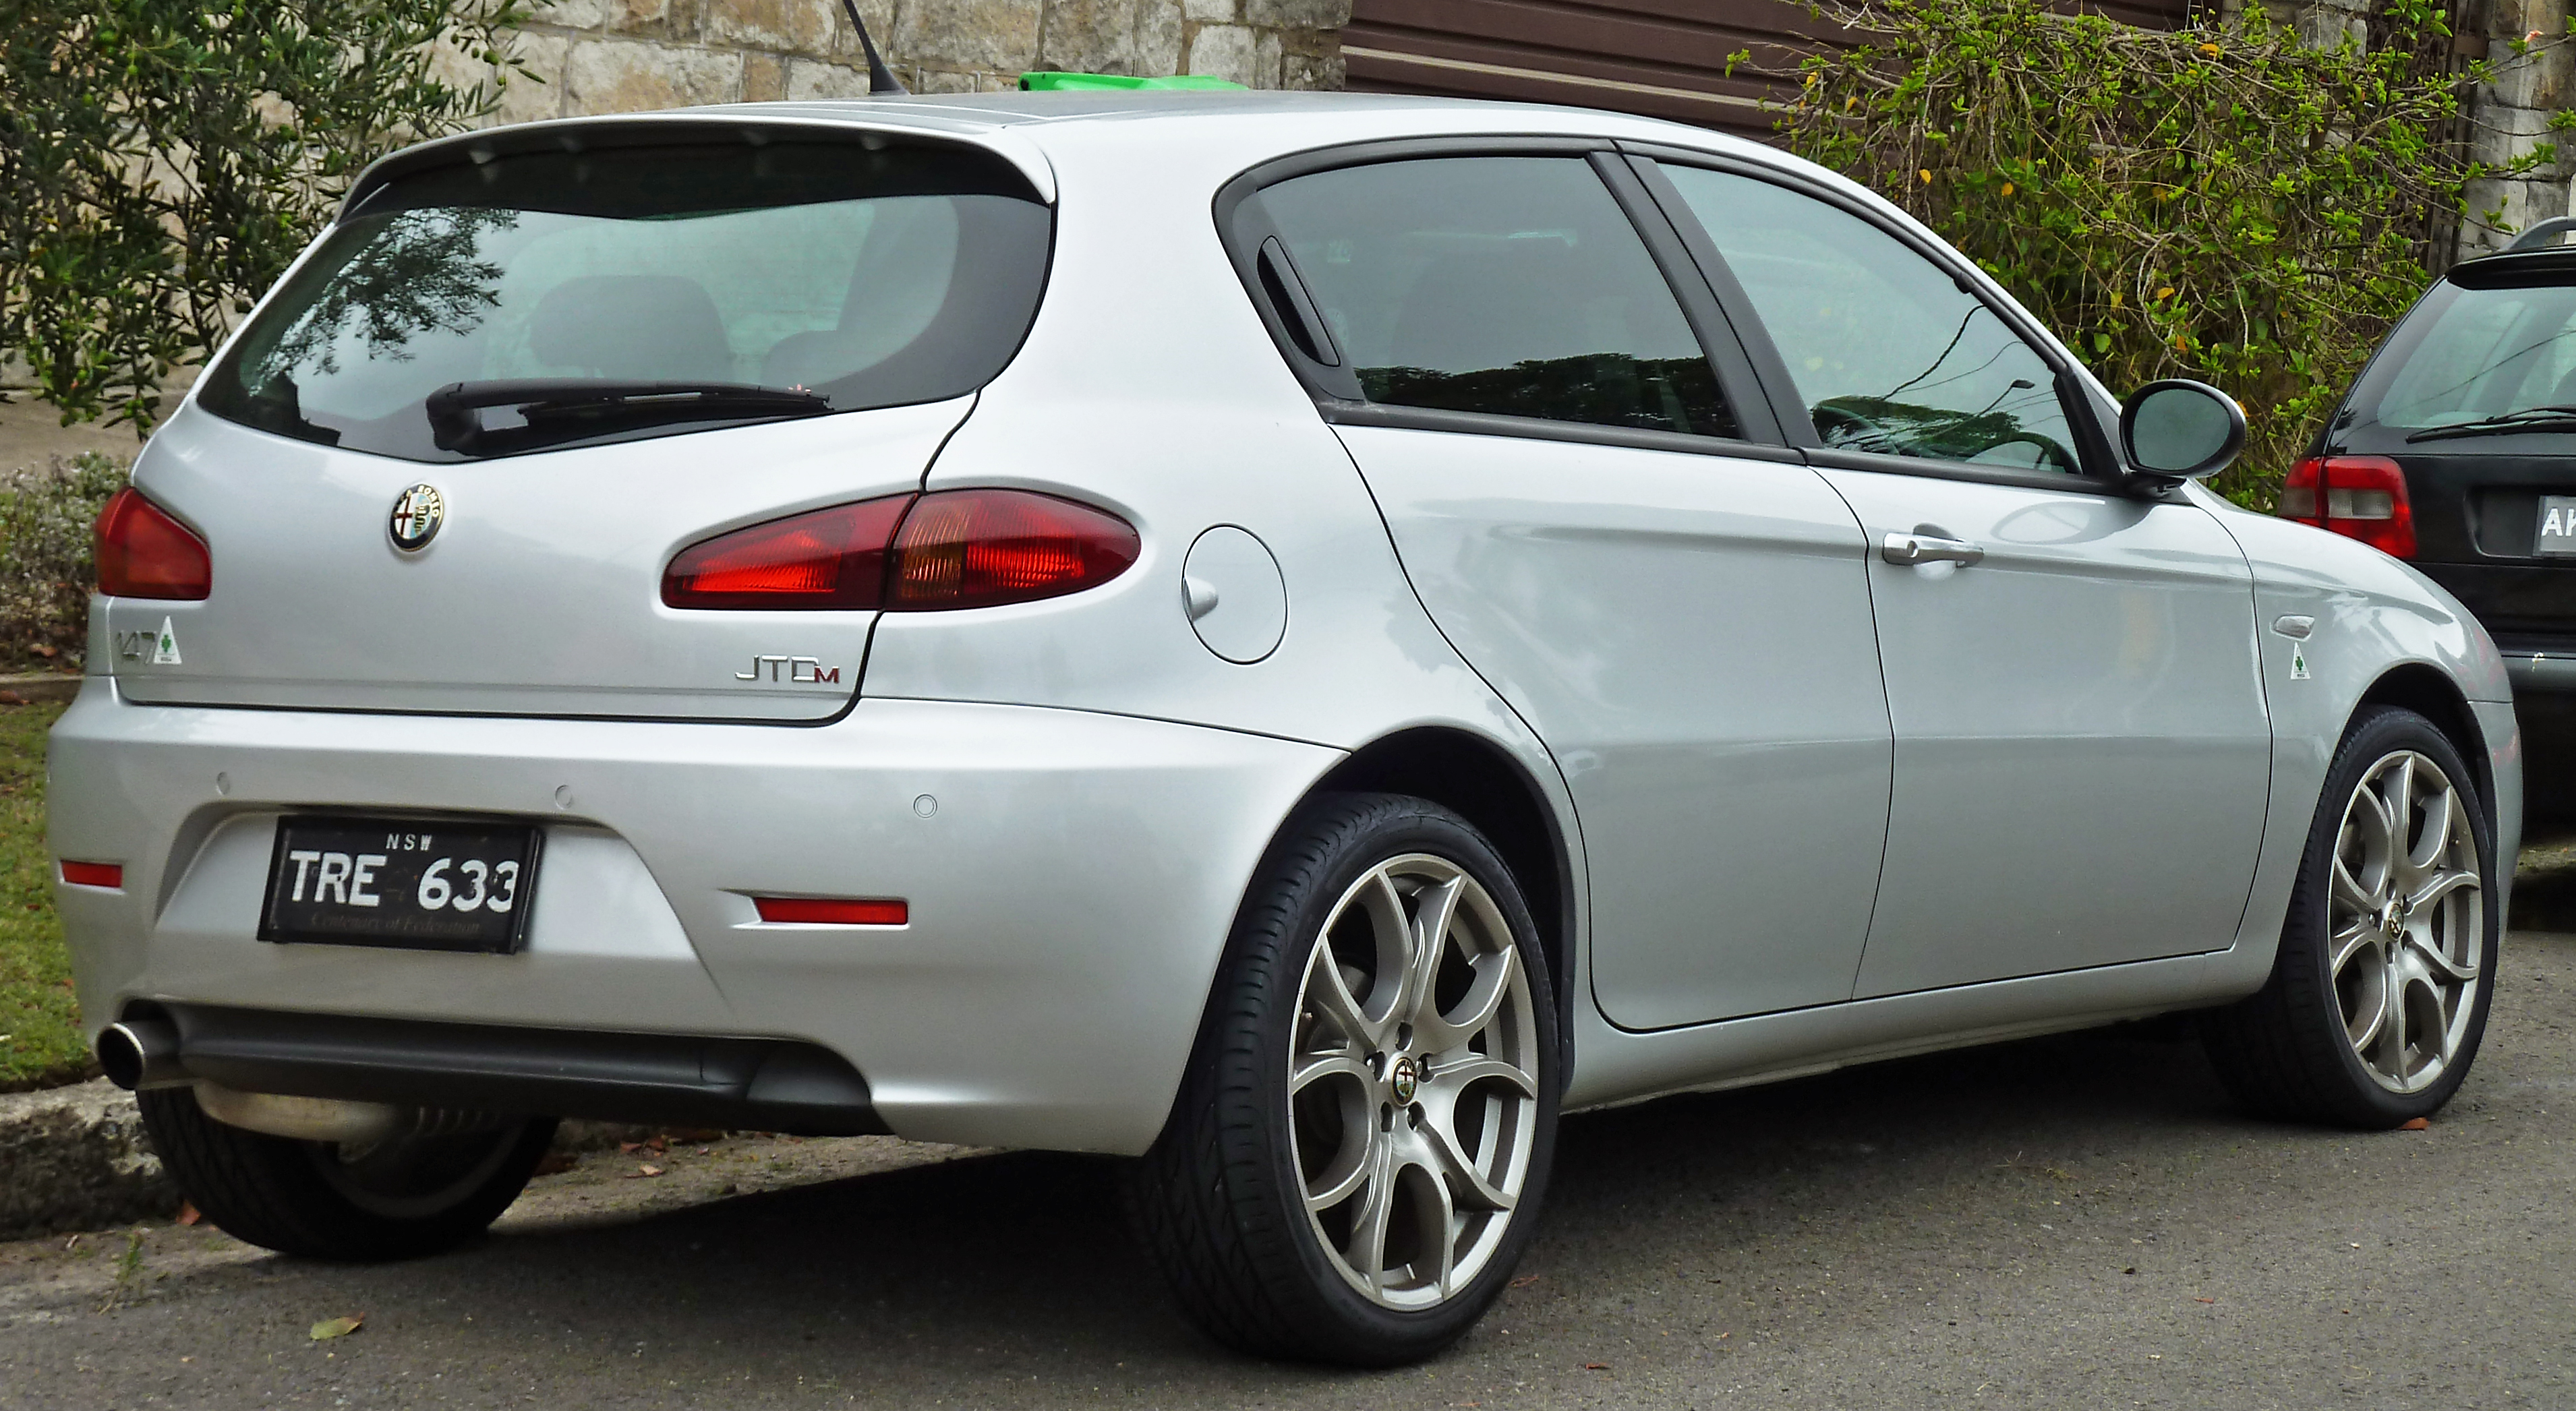 file:2008-2009 alfa romeo 147 jtd monza 5-door hatchback (2011-01-13